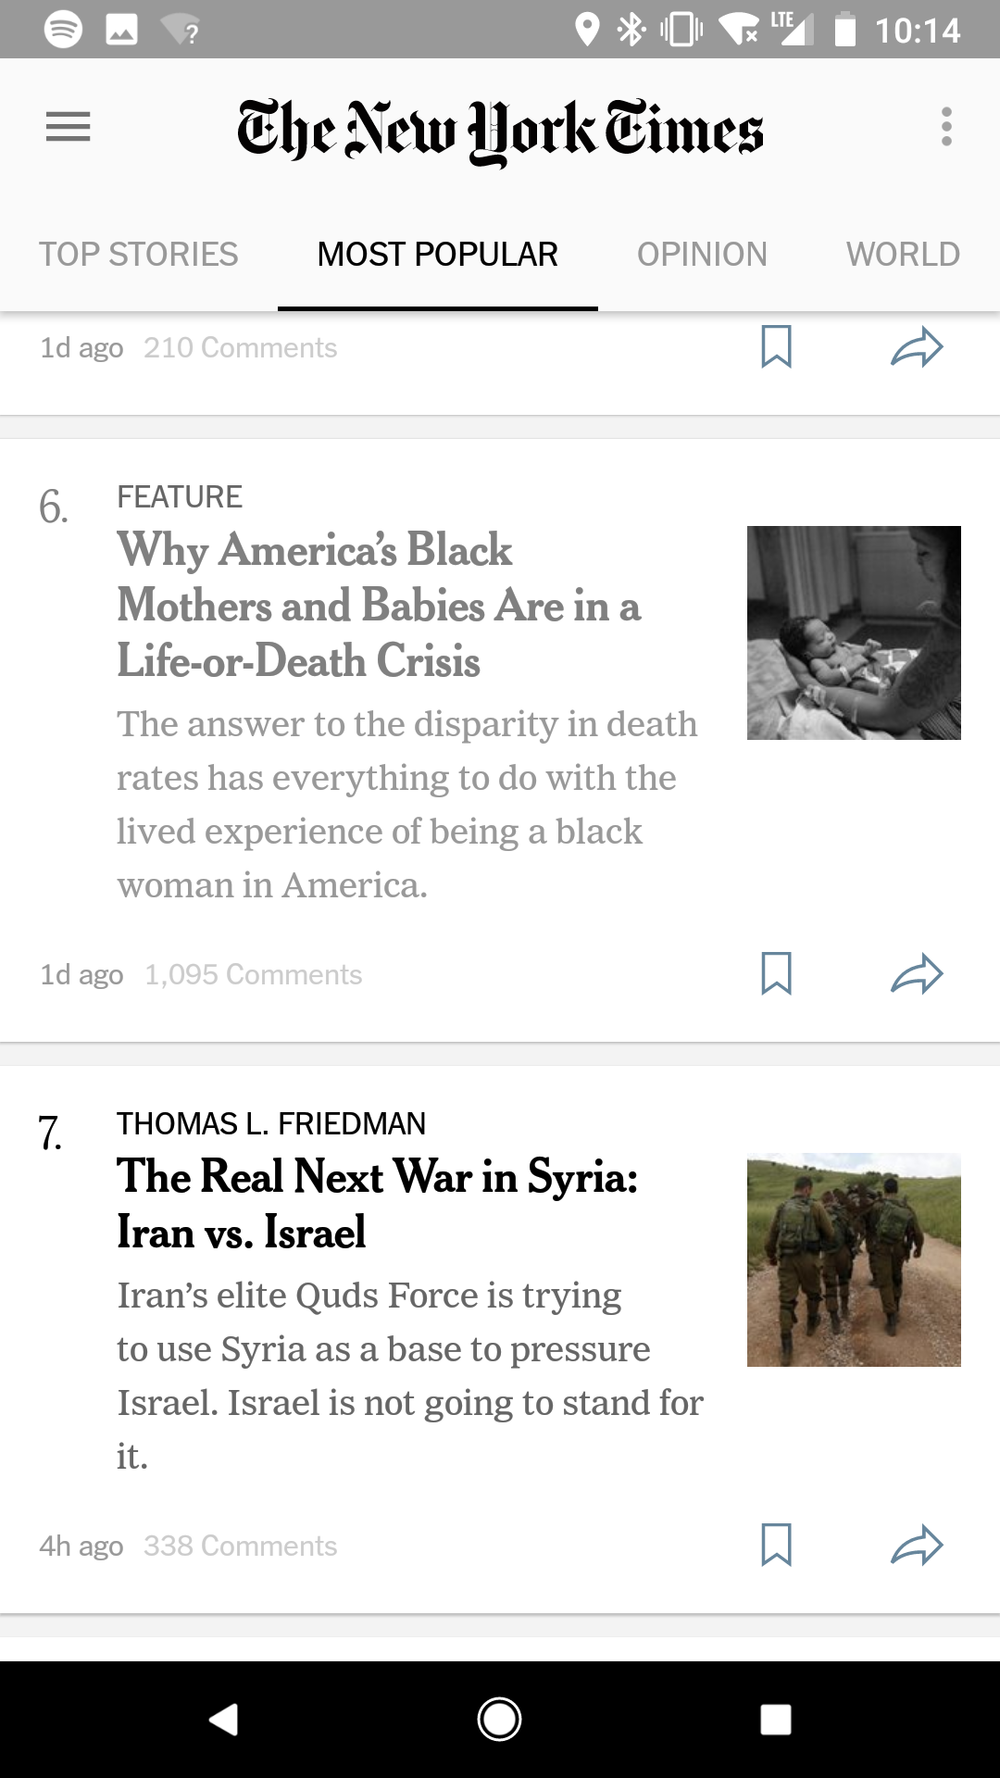 Able to navigate back to homepage for browsing, but no reading